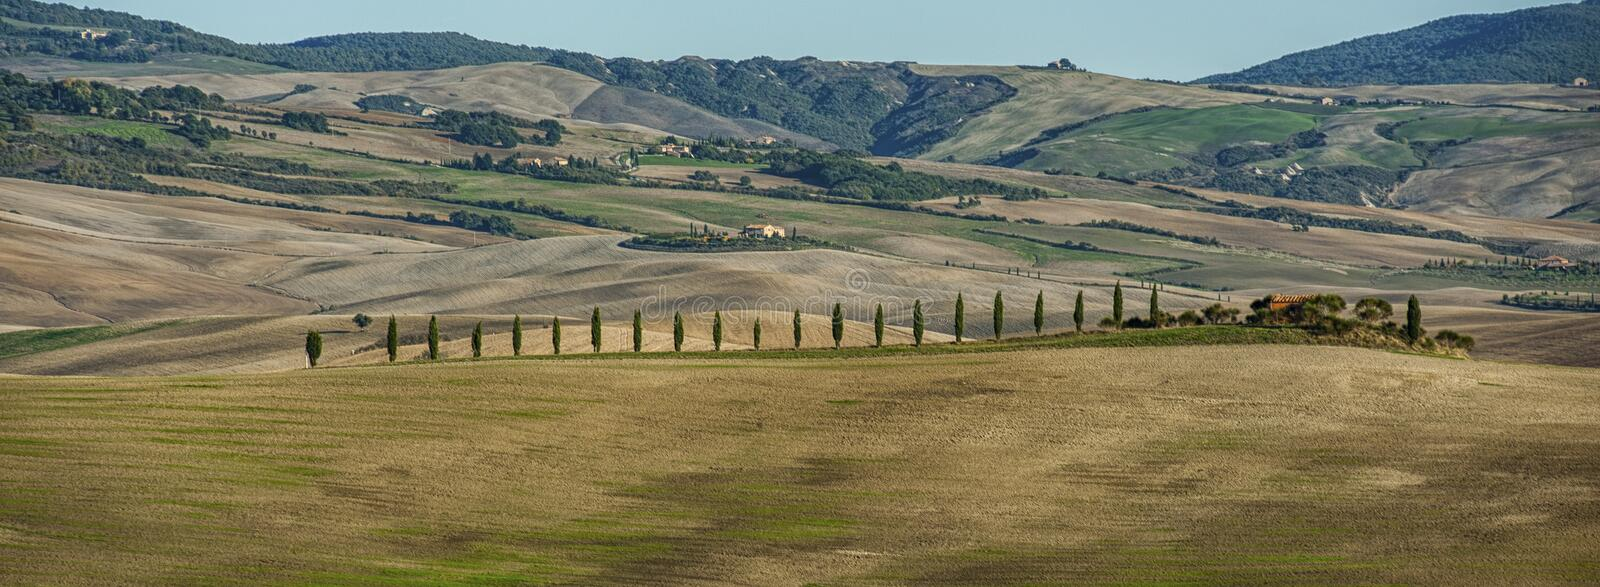 VAL D`ORCIA, TUSCANY-ITALY, OCTOBER 30, 2016: Scenic Tuscany landscape with rolling hills and valleys in autumn. Val D`Orcia, Italy stock image